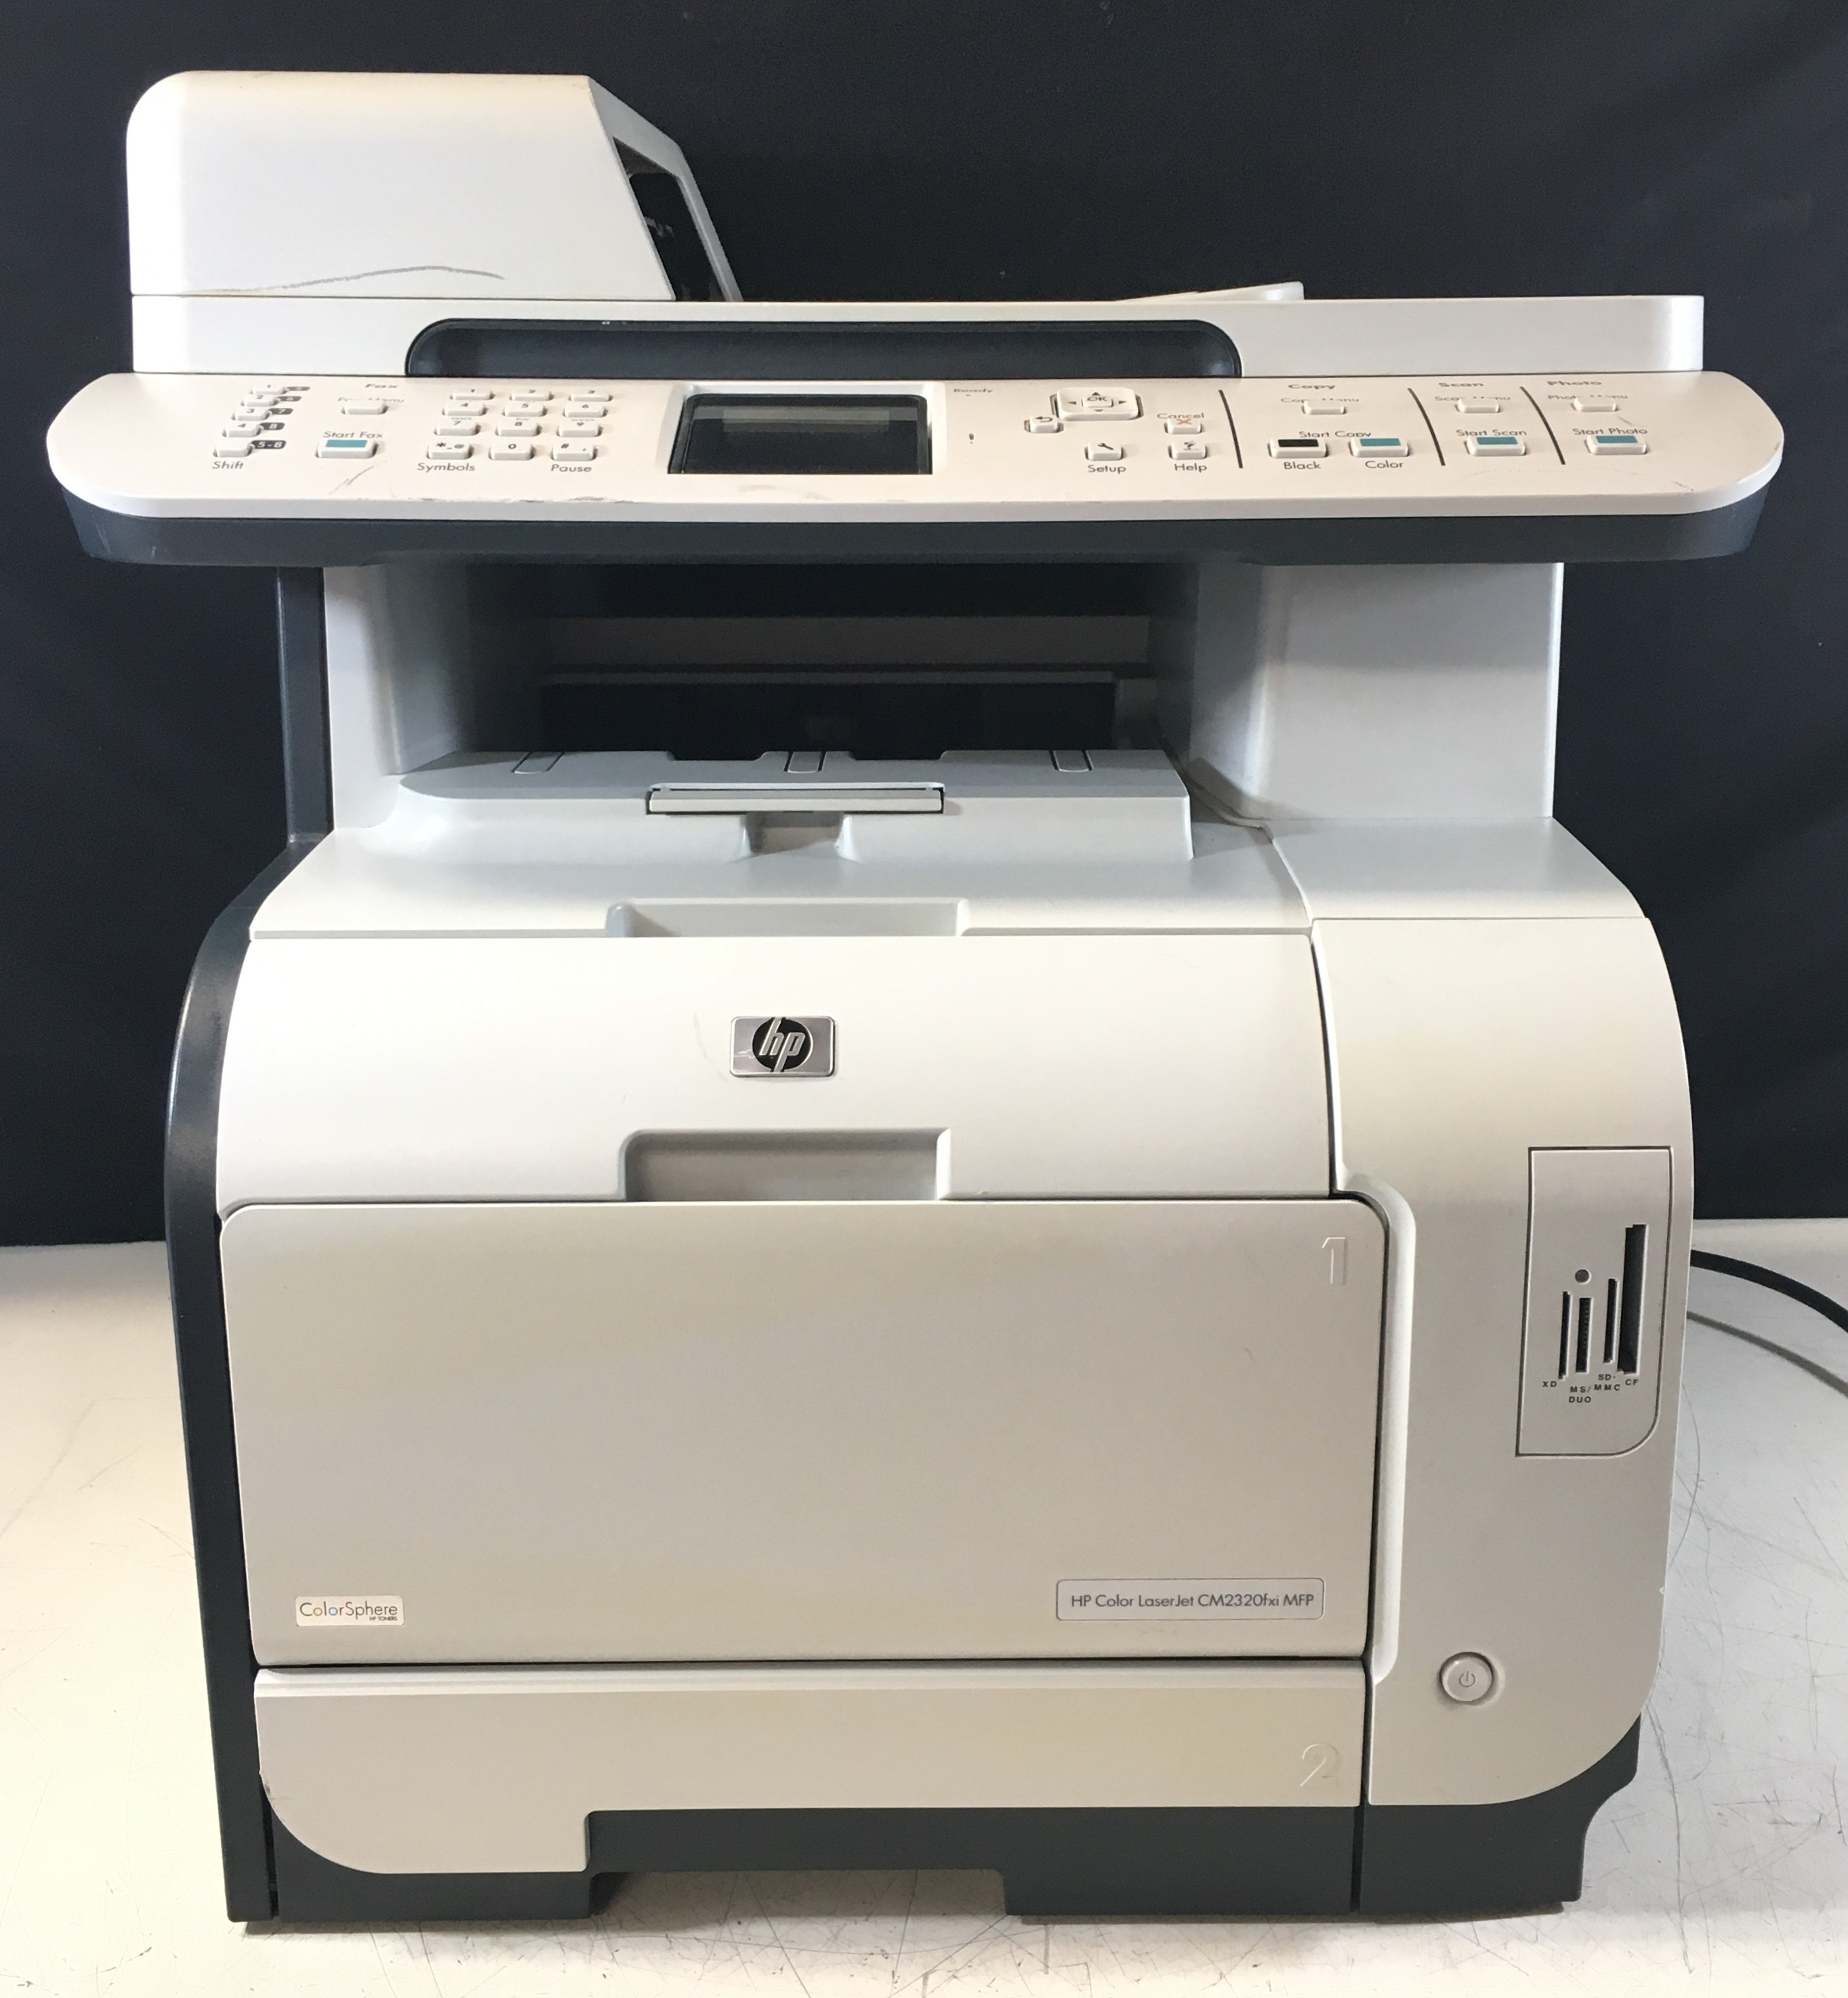 If we did not list toner life then please be prepared to replace toner.  Printers do not come with any manuals and/or drivers (unless stated  otherwise) but ...